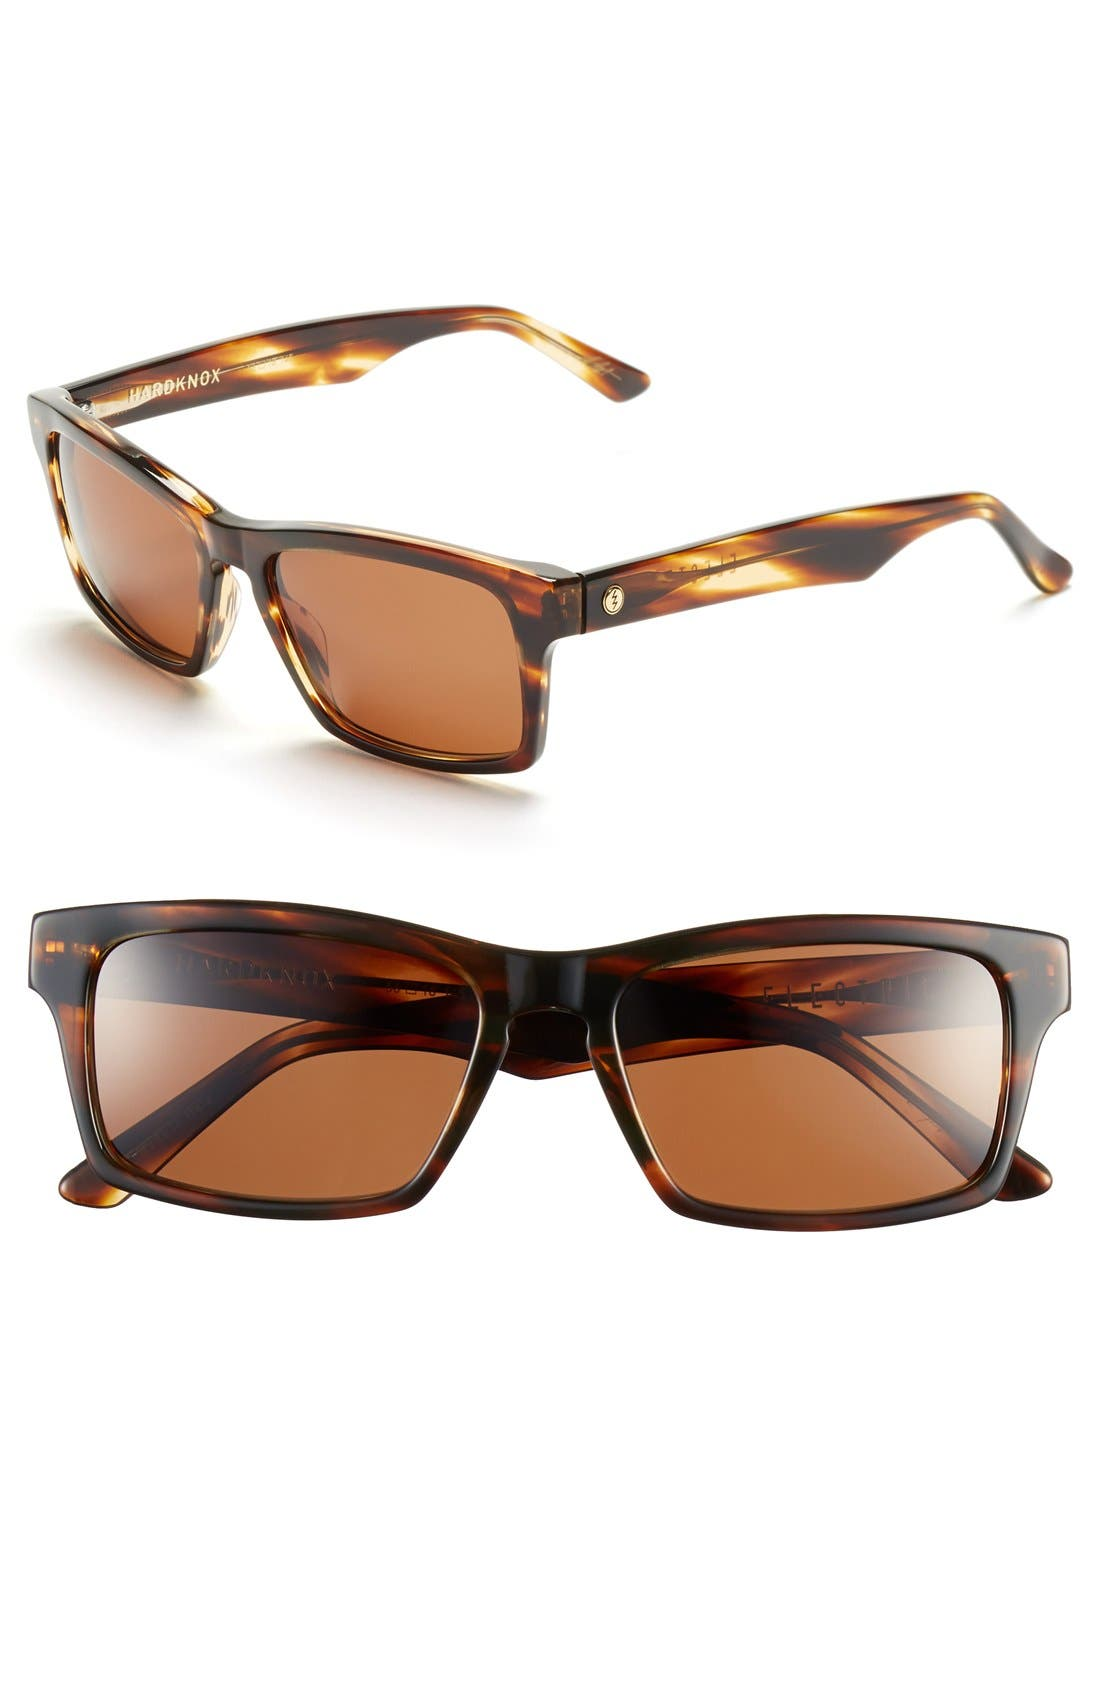 ELECTRIC Hardknox 56mm Sunglasses